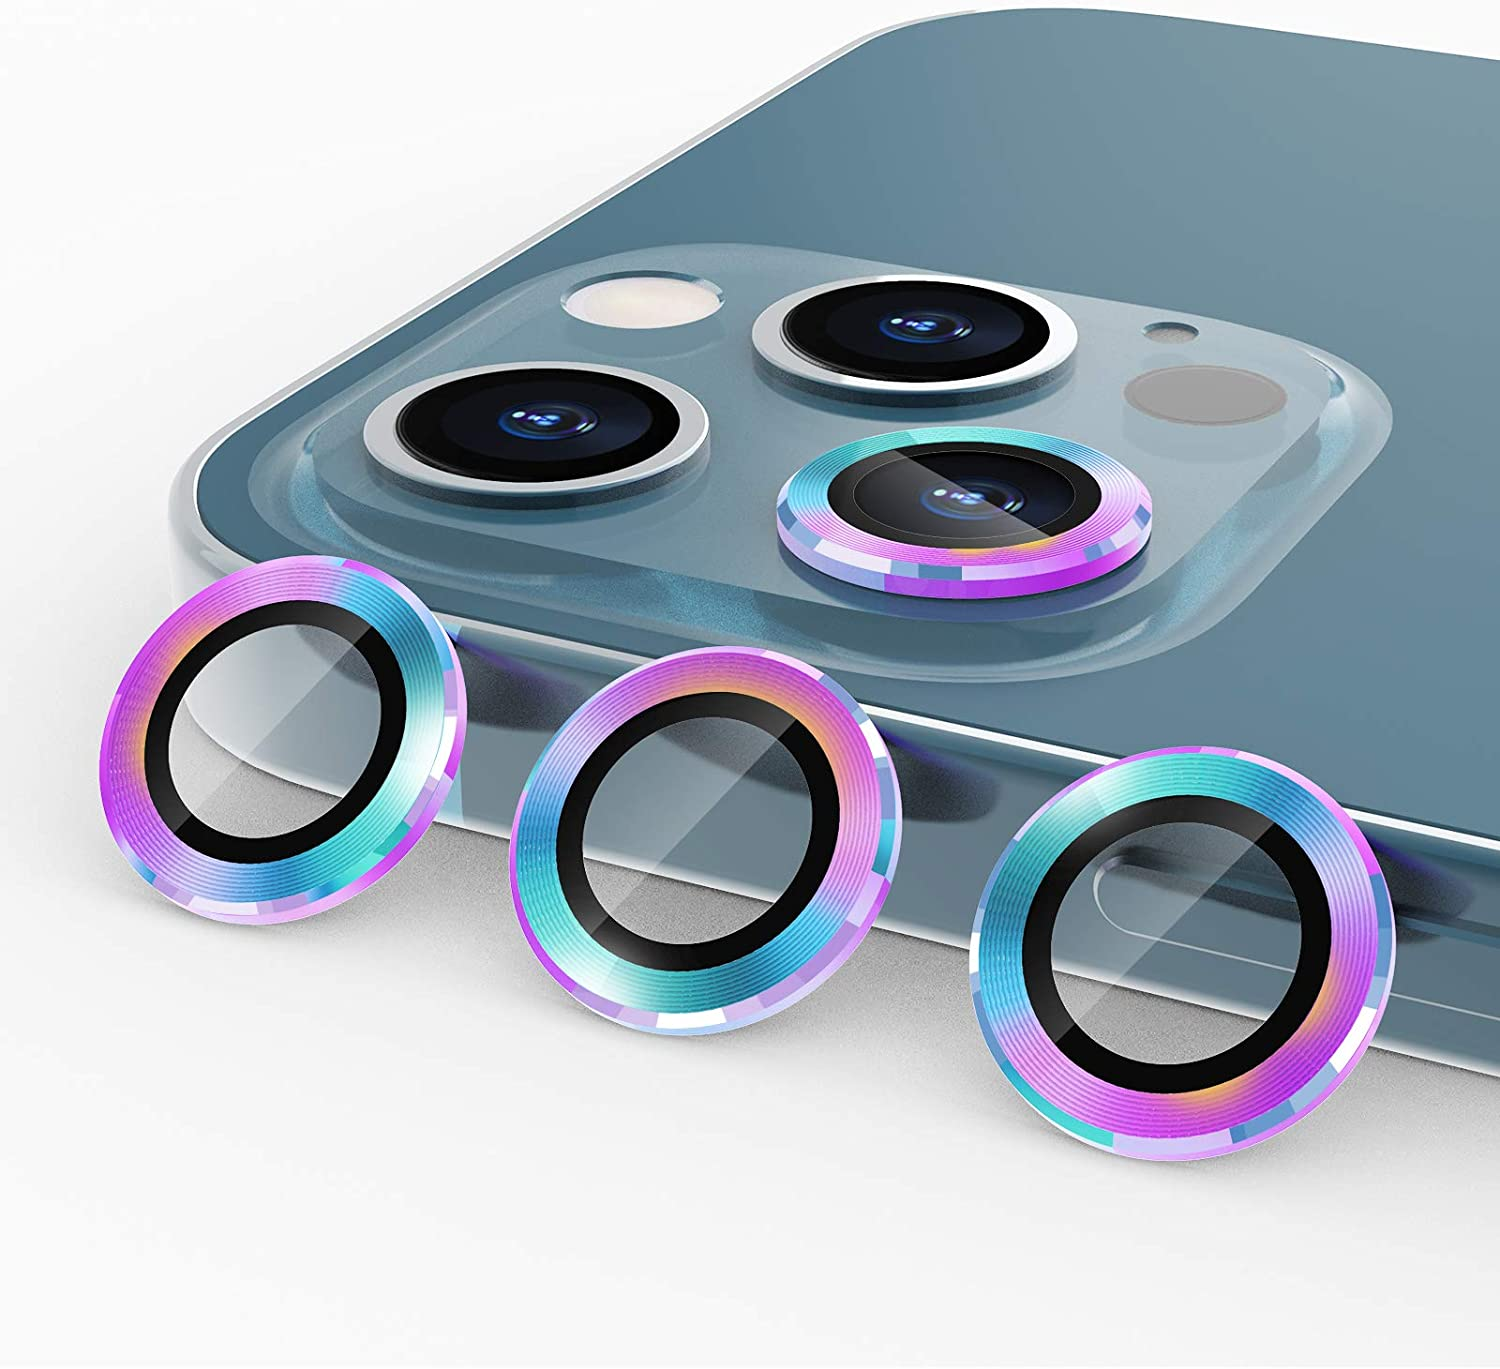 3 Pack Under blast sales imluckies 40% OFF Cheap Sale Colorful Camera Lens iPhone for P 12 Protector